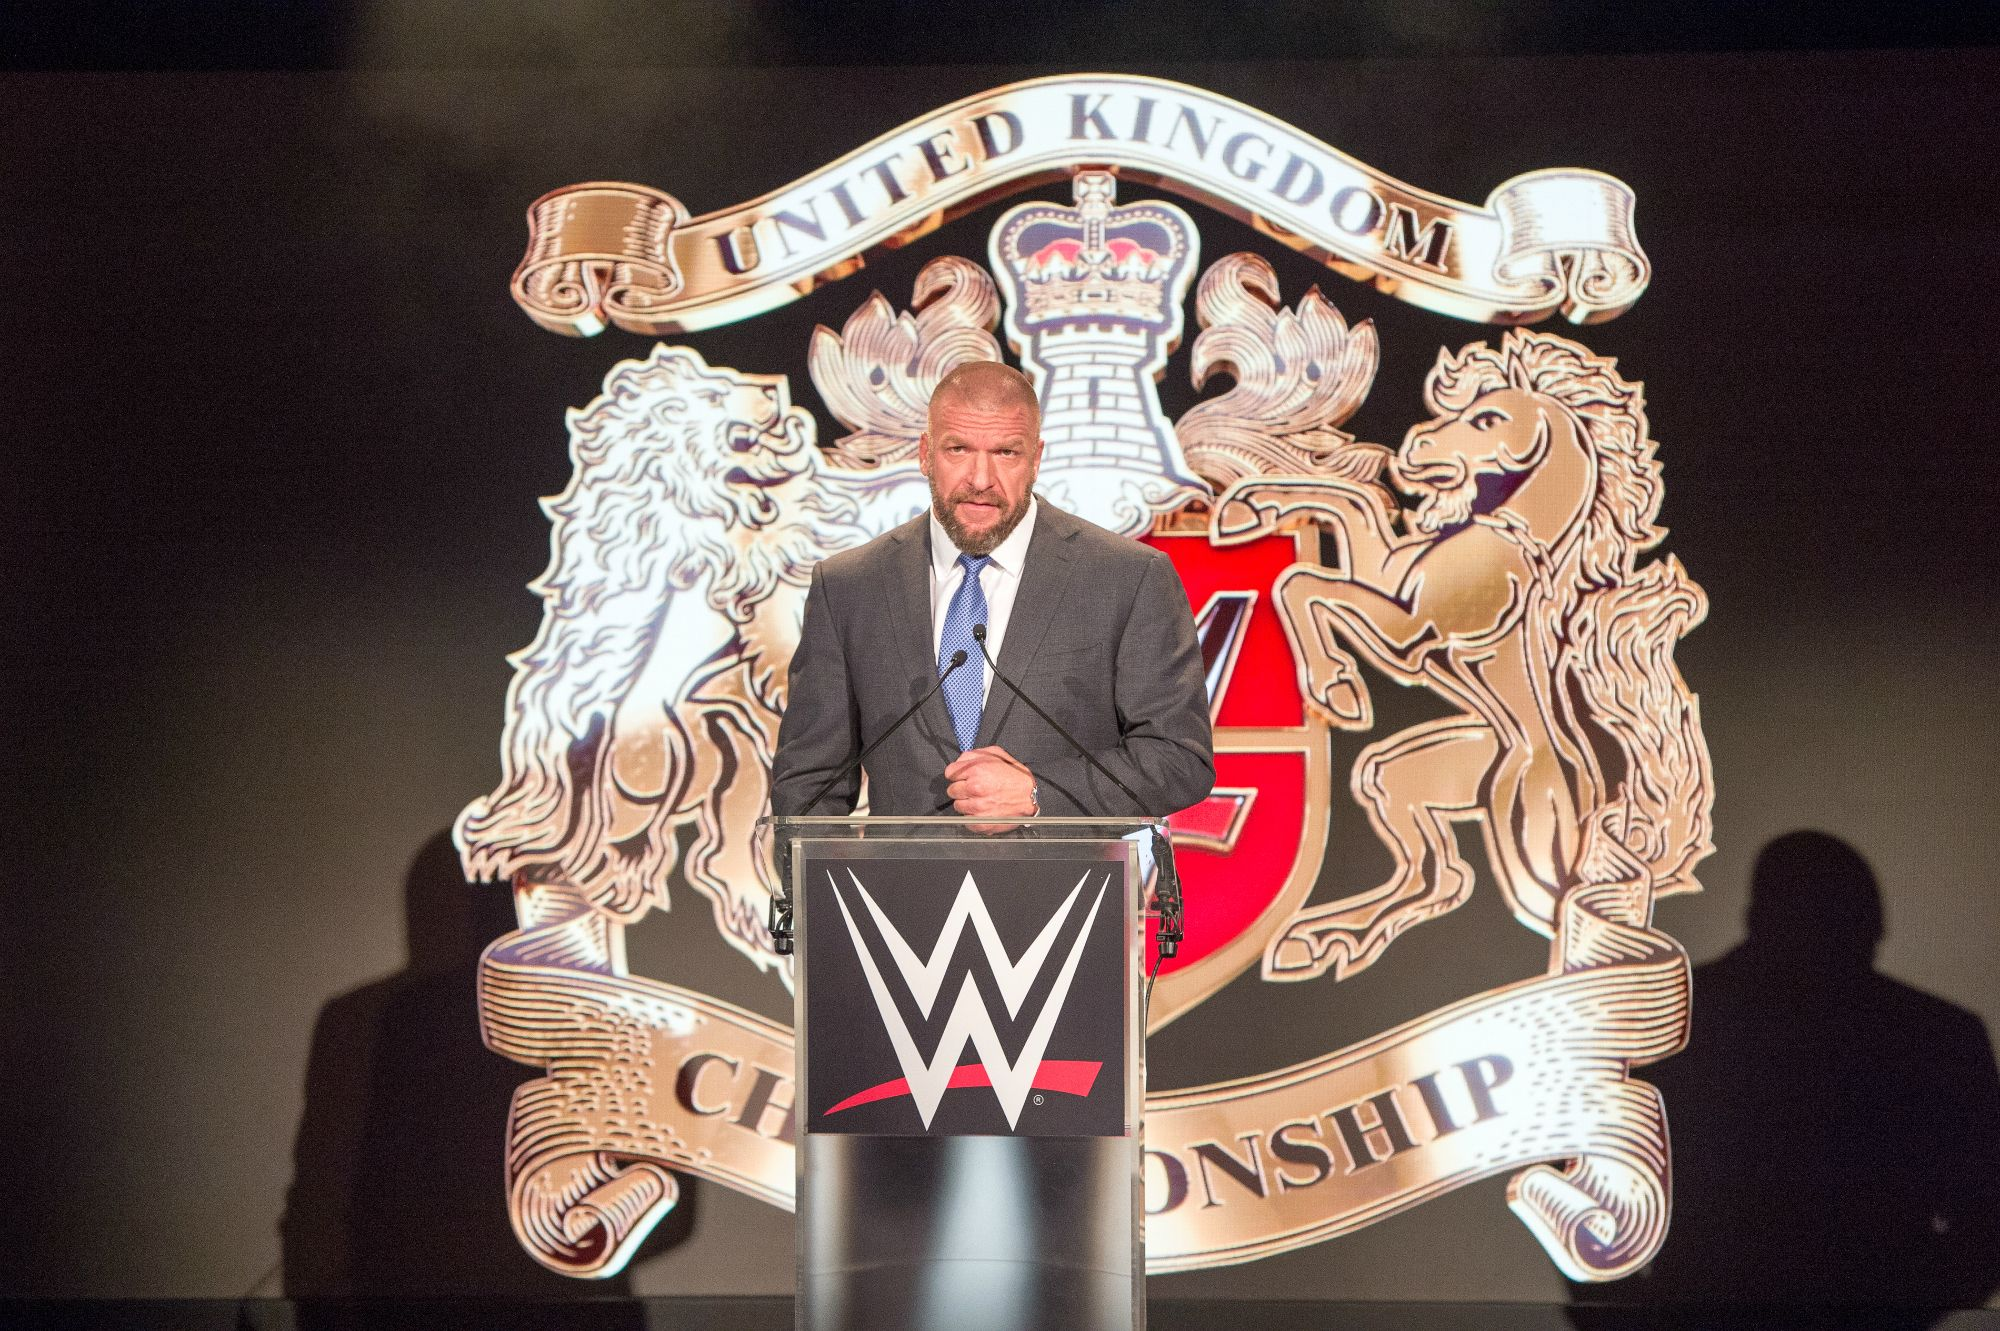 WWE's Triple H launches the United Kingdom Championship